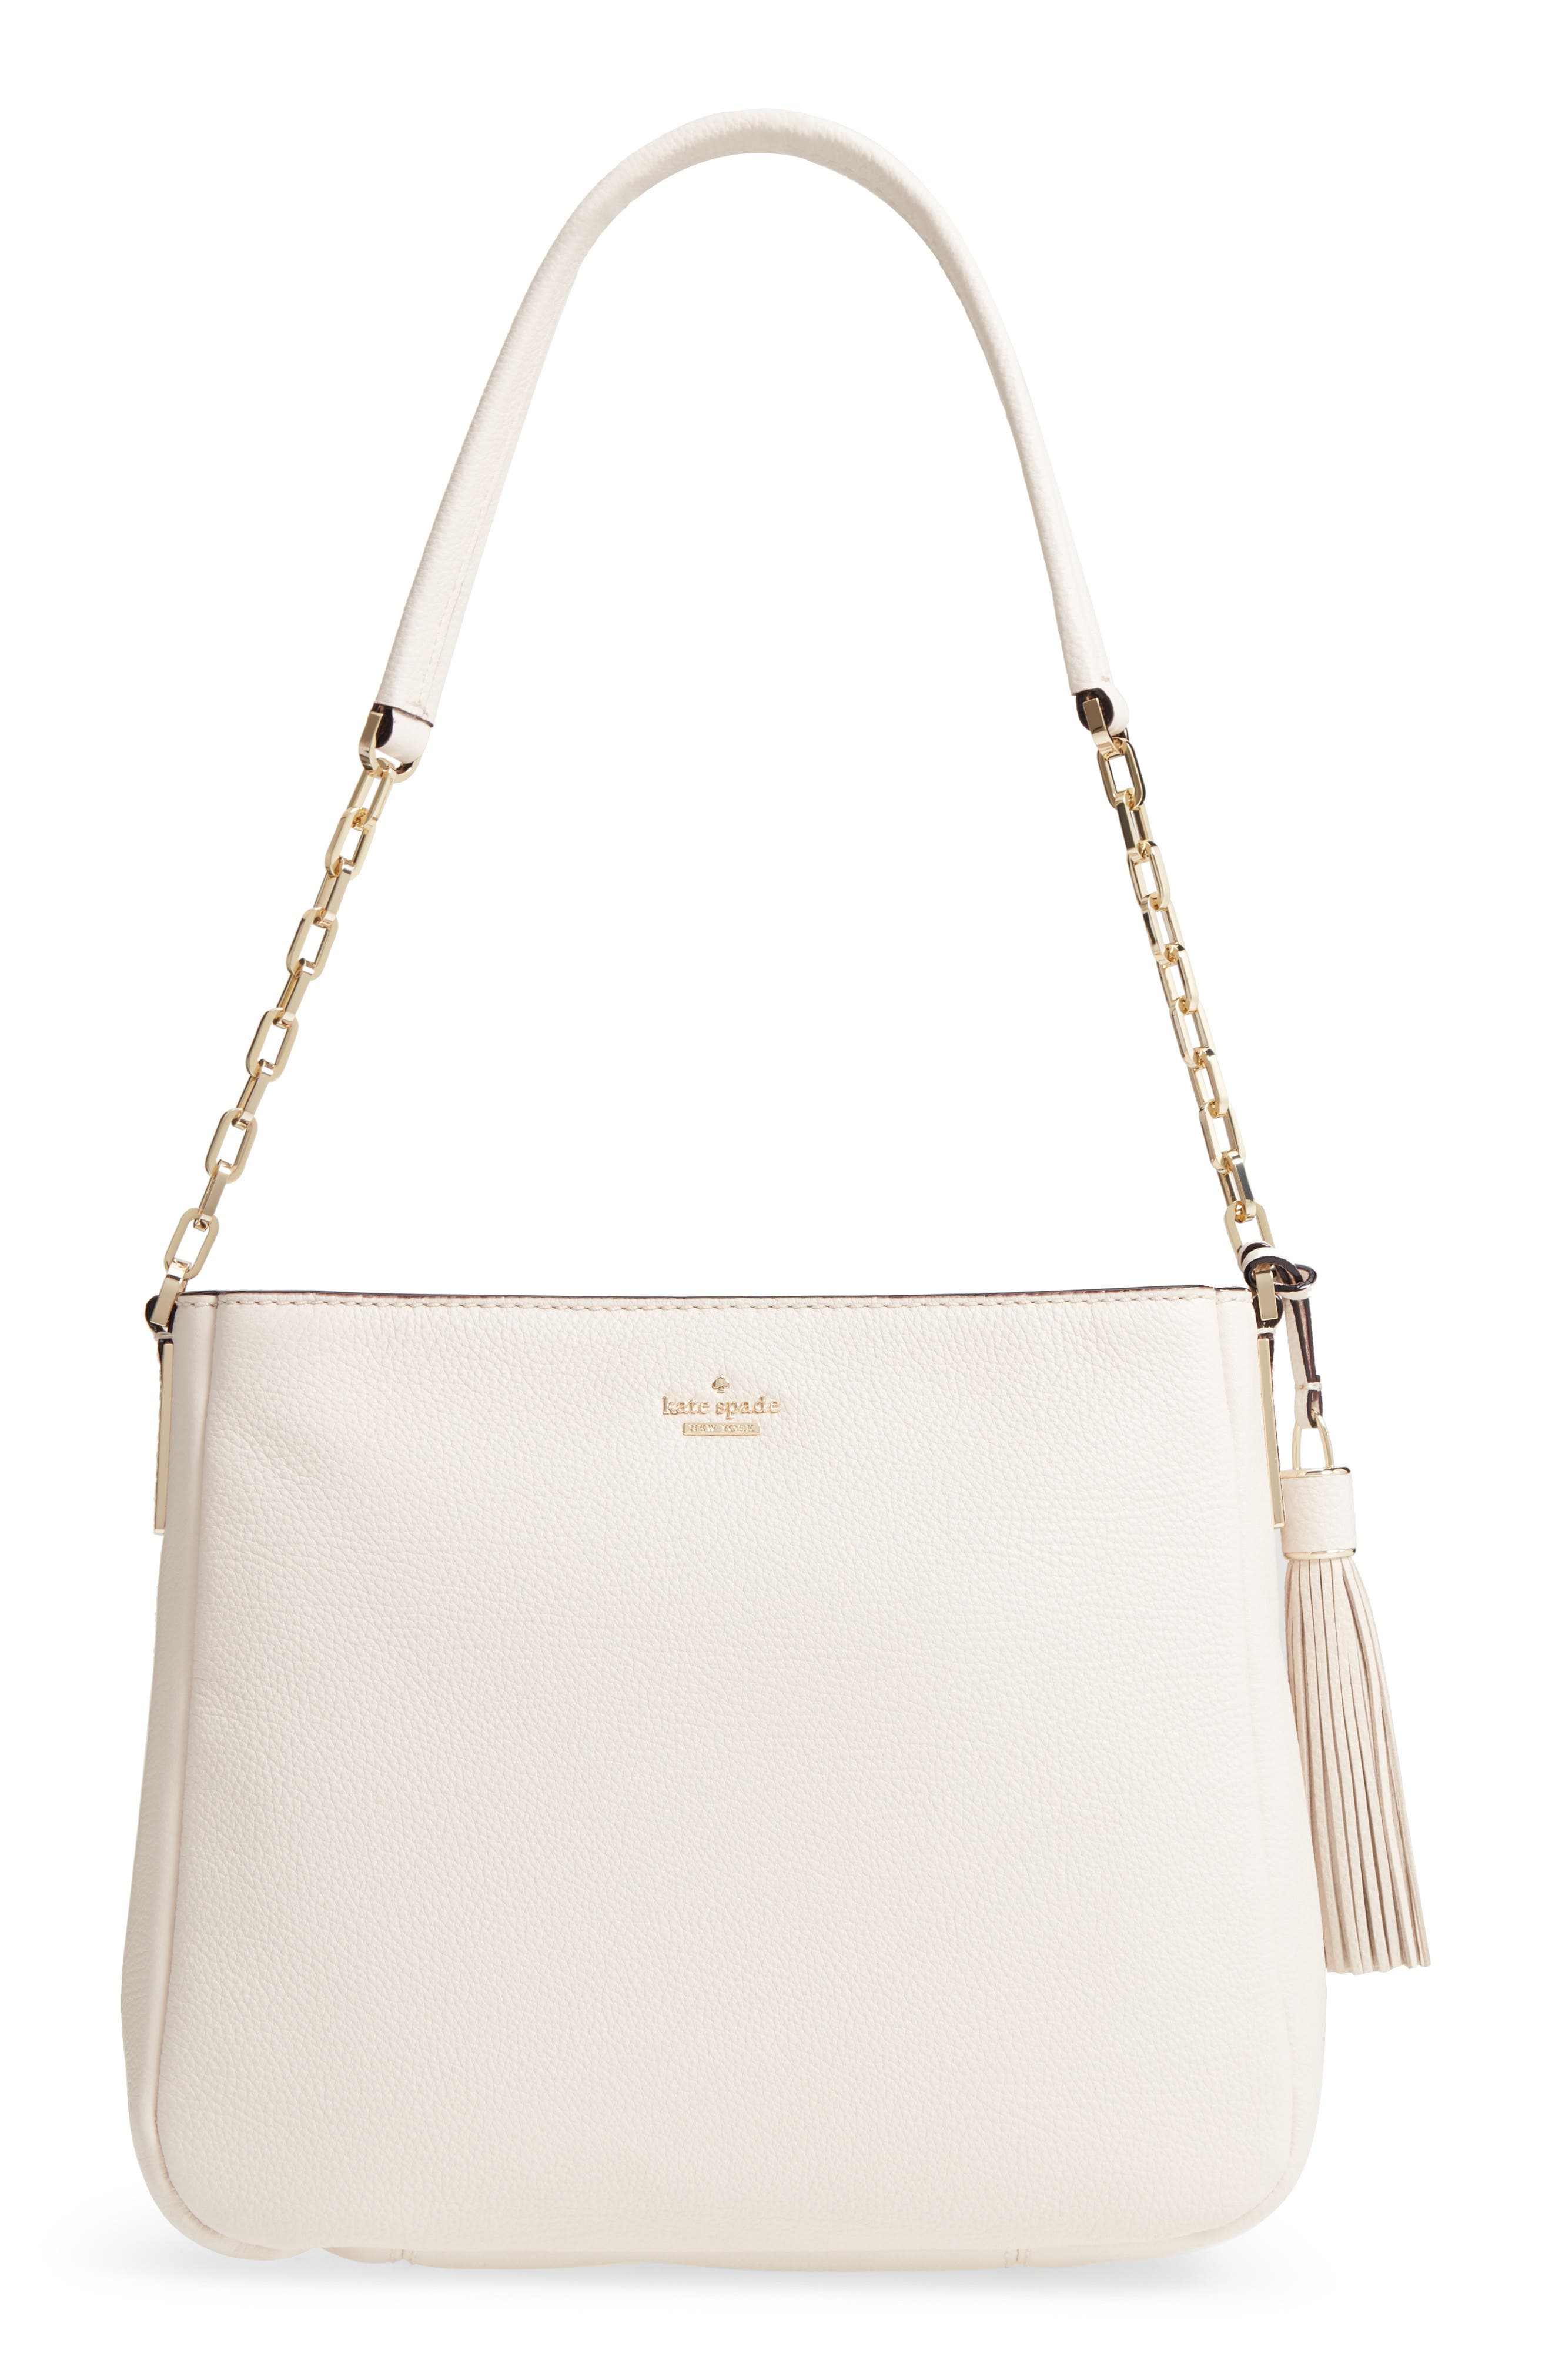 kingston drive - shannon leather shoulder bag,                             Main thumbnail 1, color,                             Bleach Bone